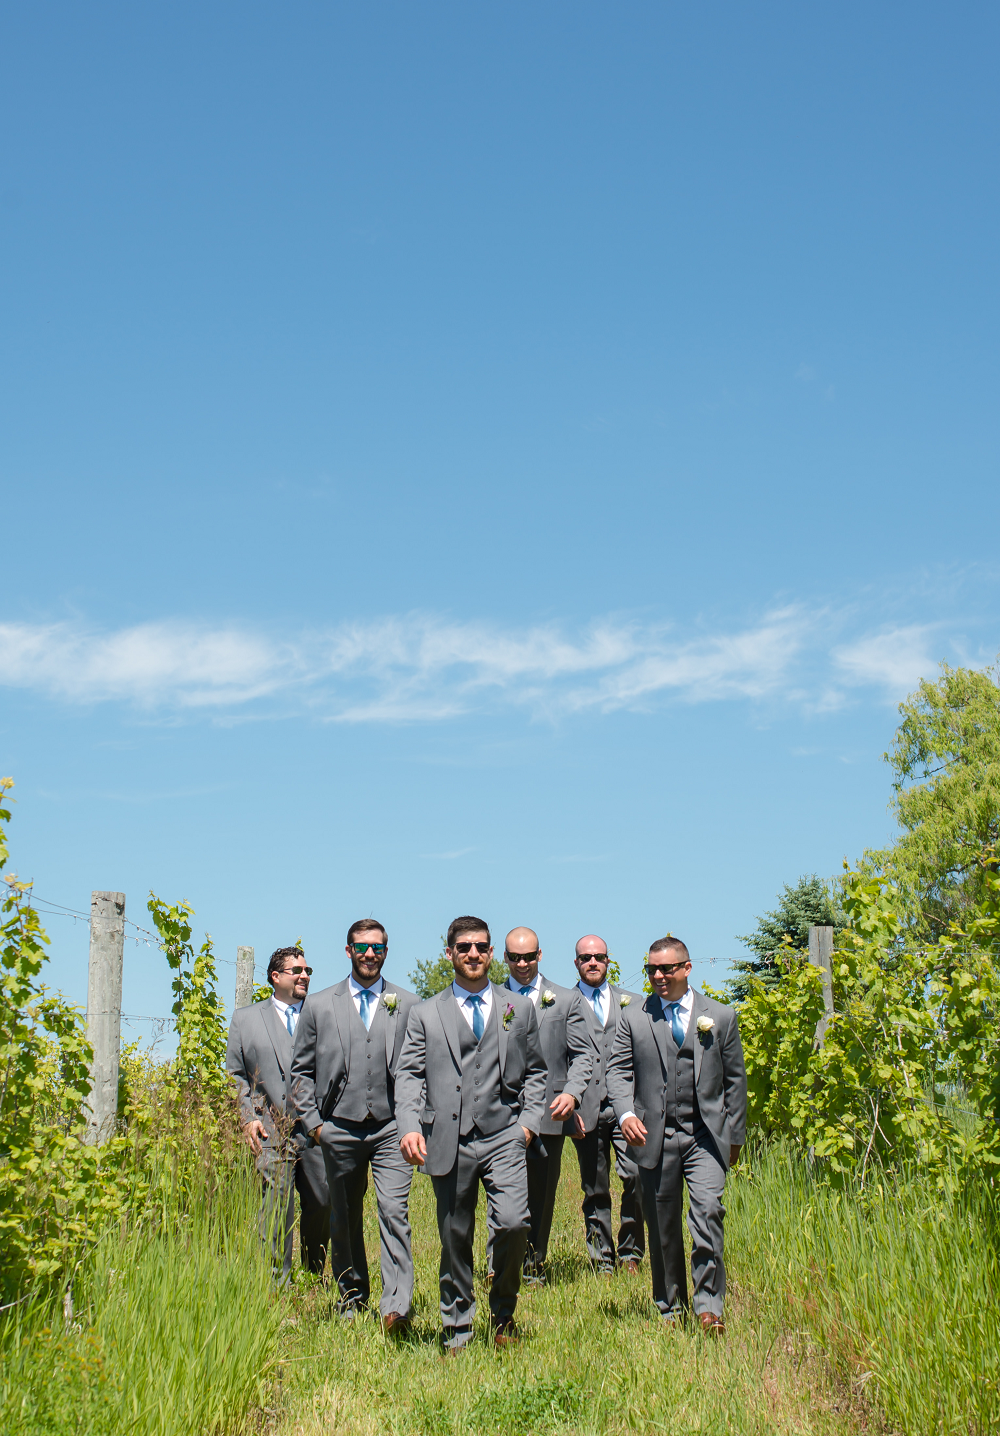 DESTINATION WEDDING IN TRAVERSE CITY WITH KRISTEN AND SCOTT Groomsmen Walking